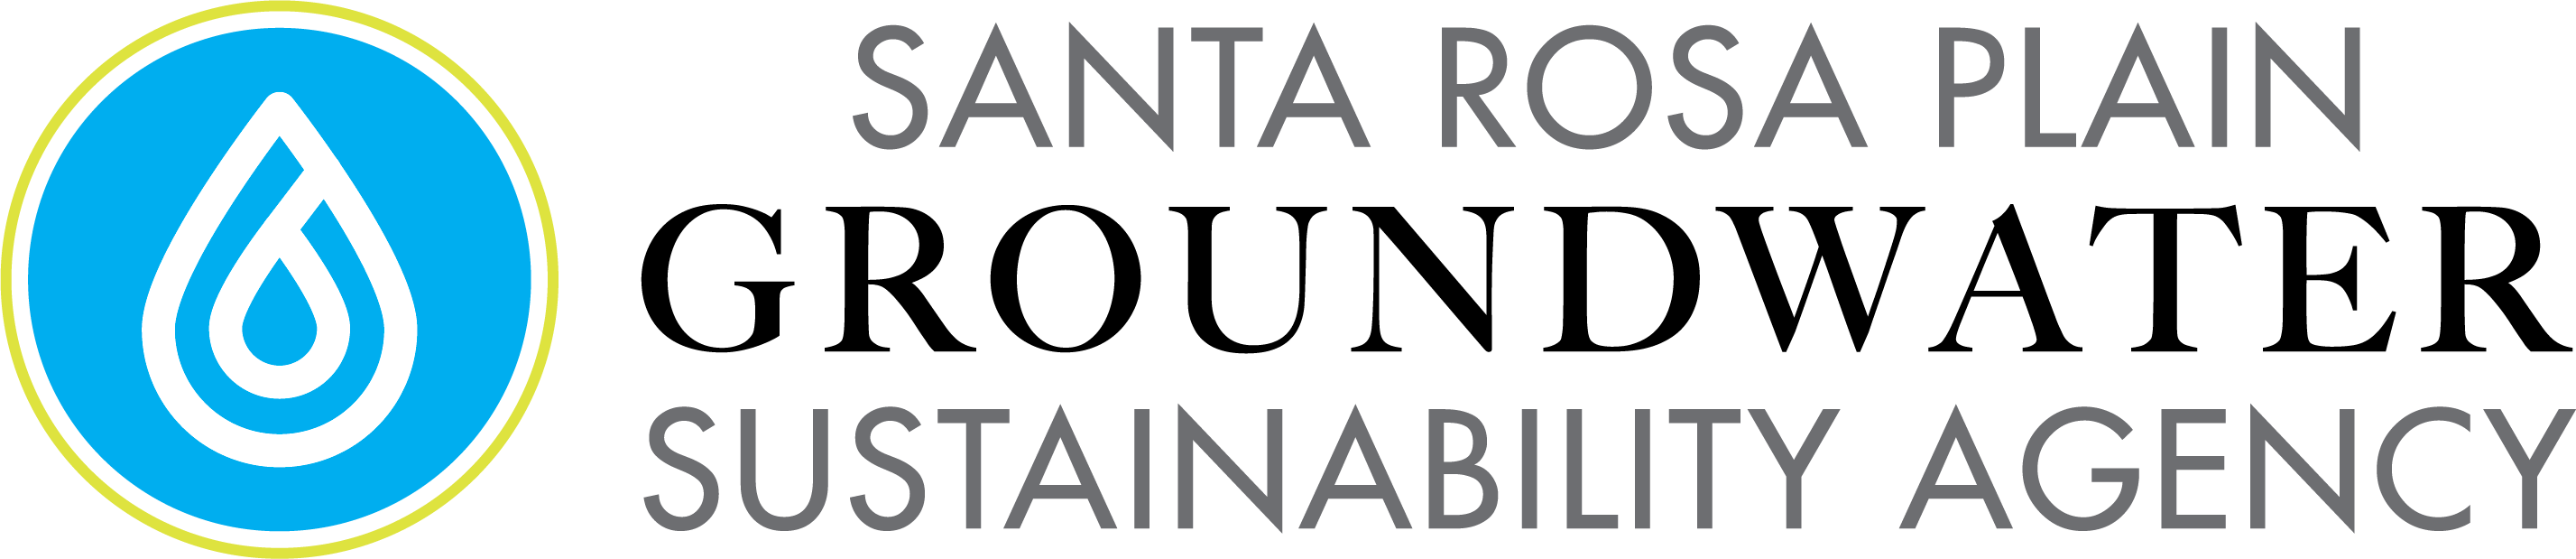 Santa Rosa Plain Groundwater Sustainability Agency